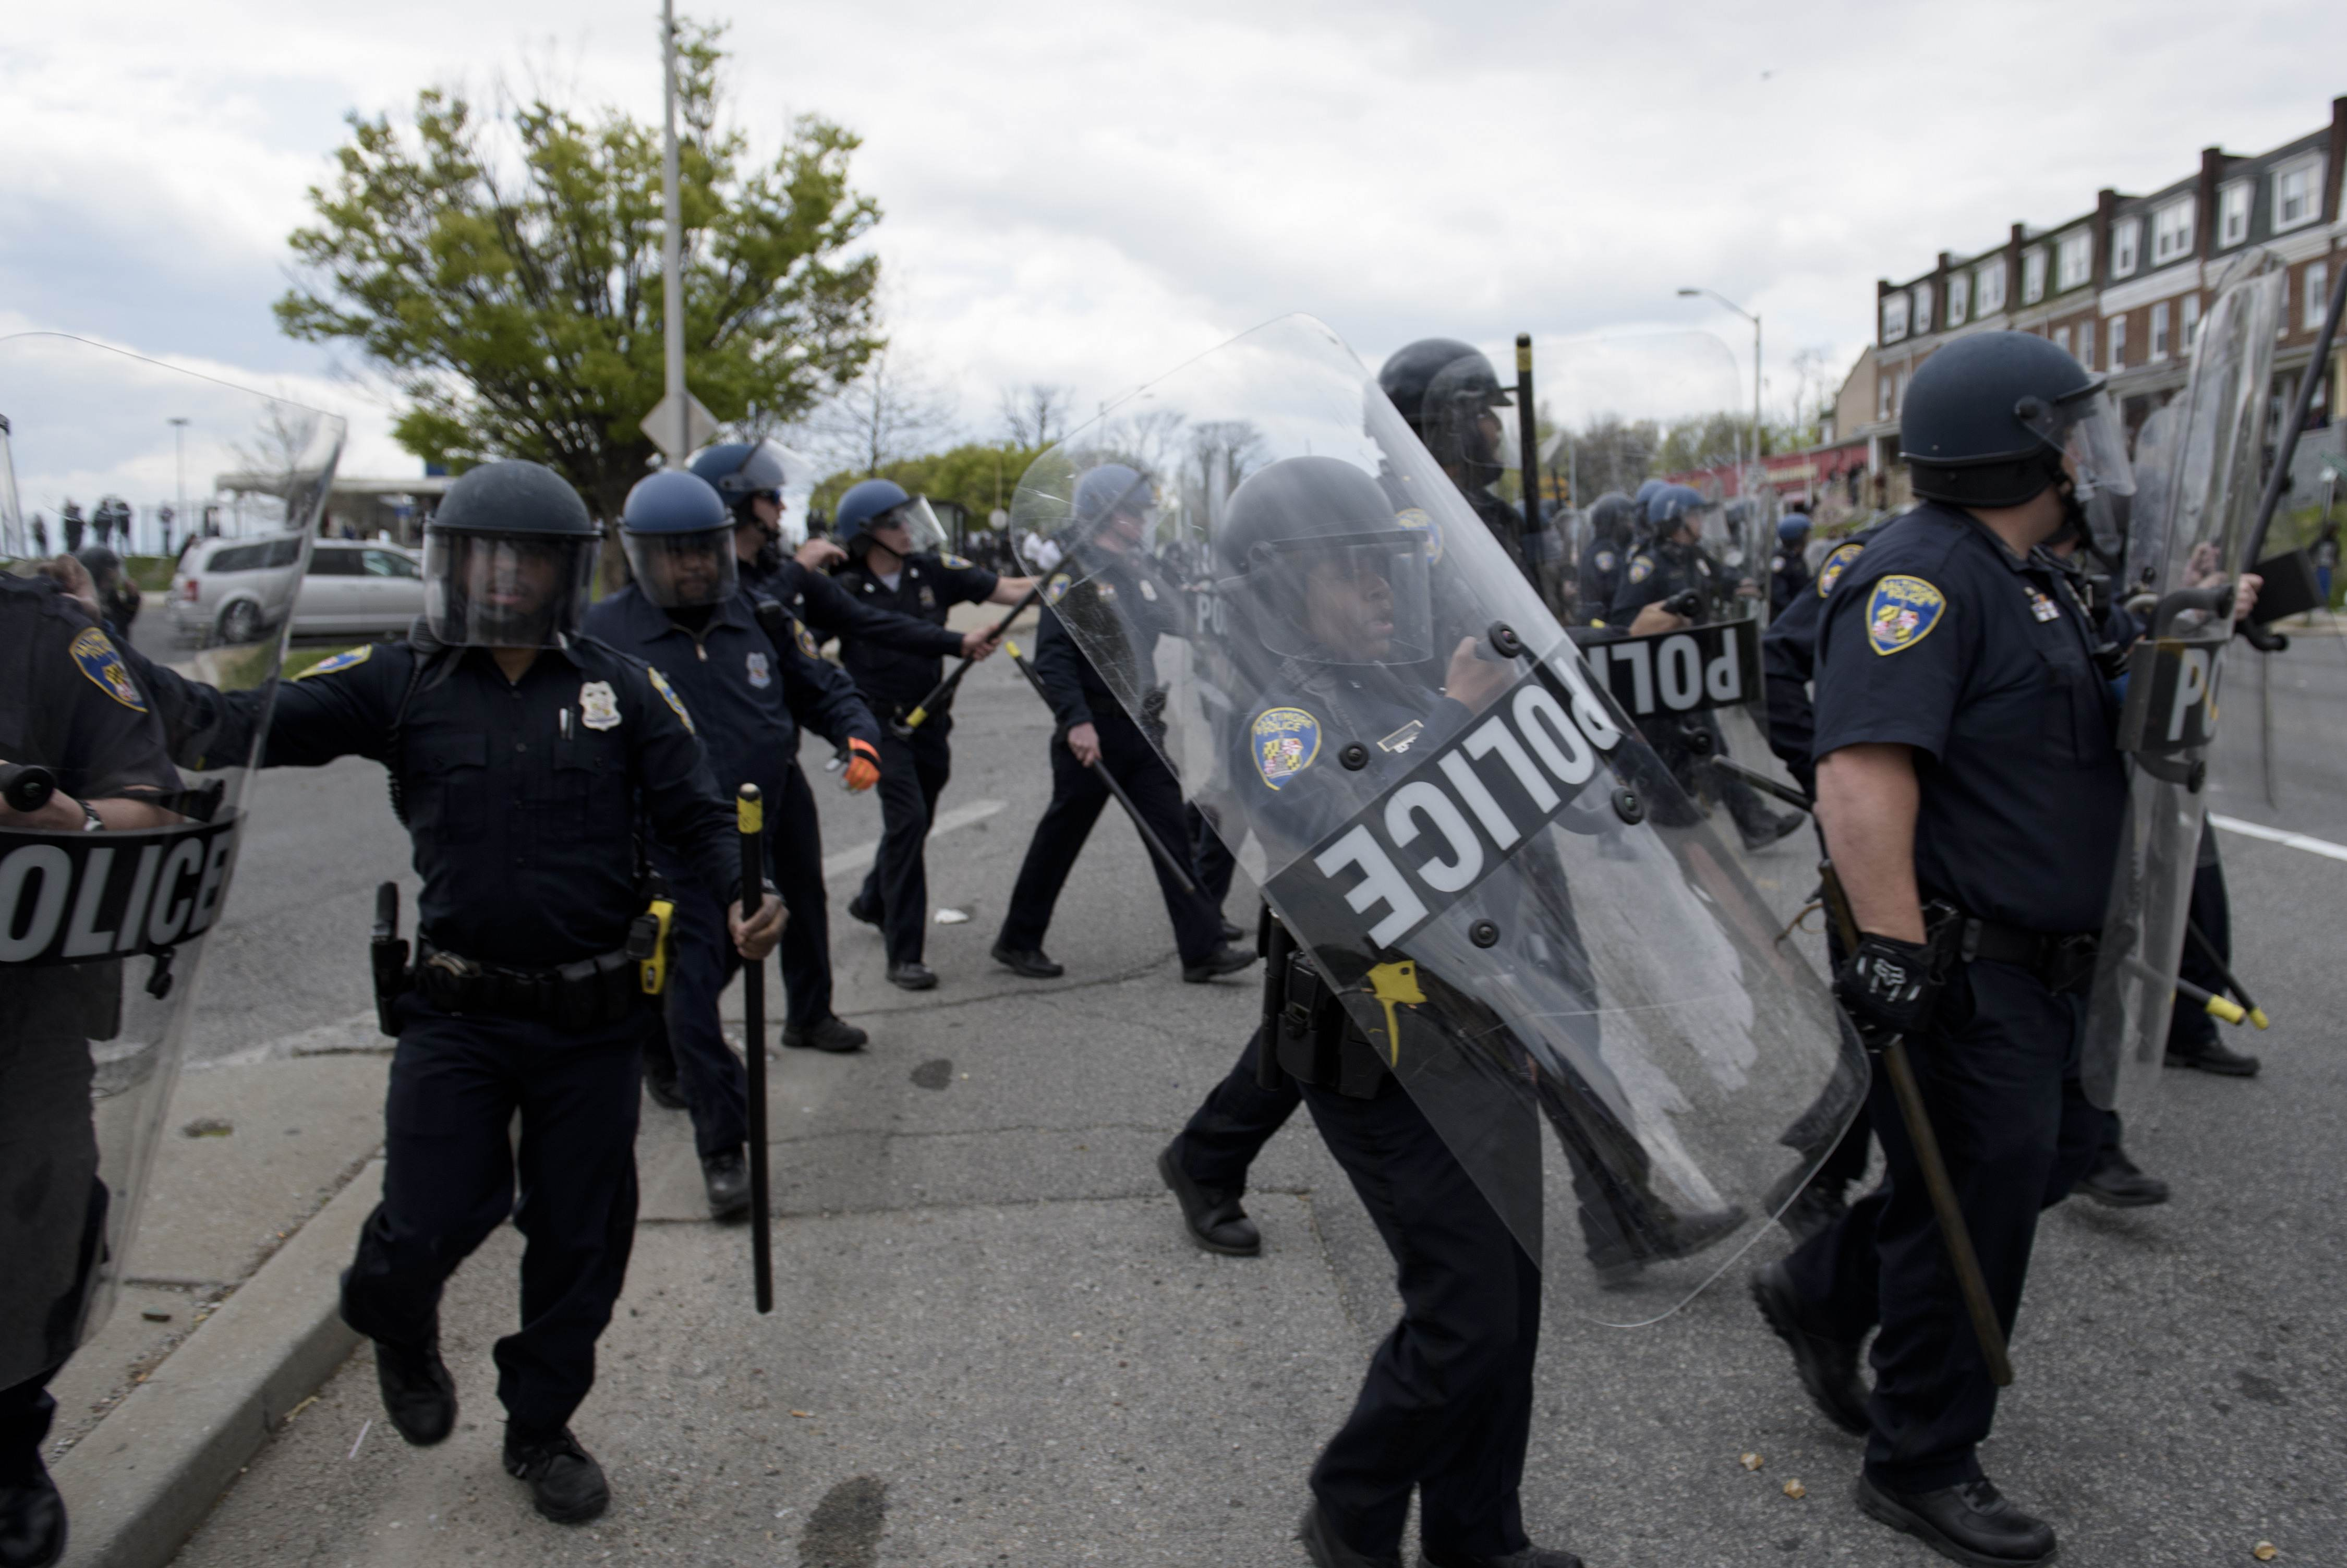 Baltimore police officers in riot gear push protestors back along -  Baltimore Police Officers Clash With Protesters In The Streets Near Mondawmin Mall On Monday